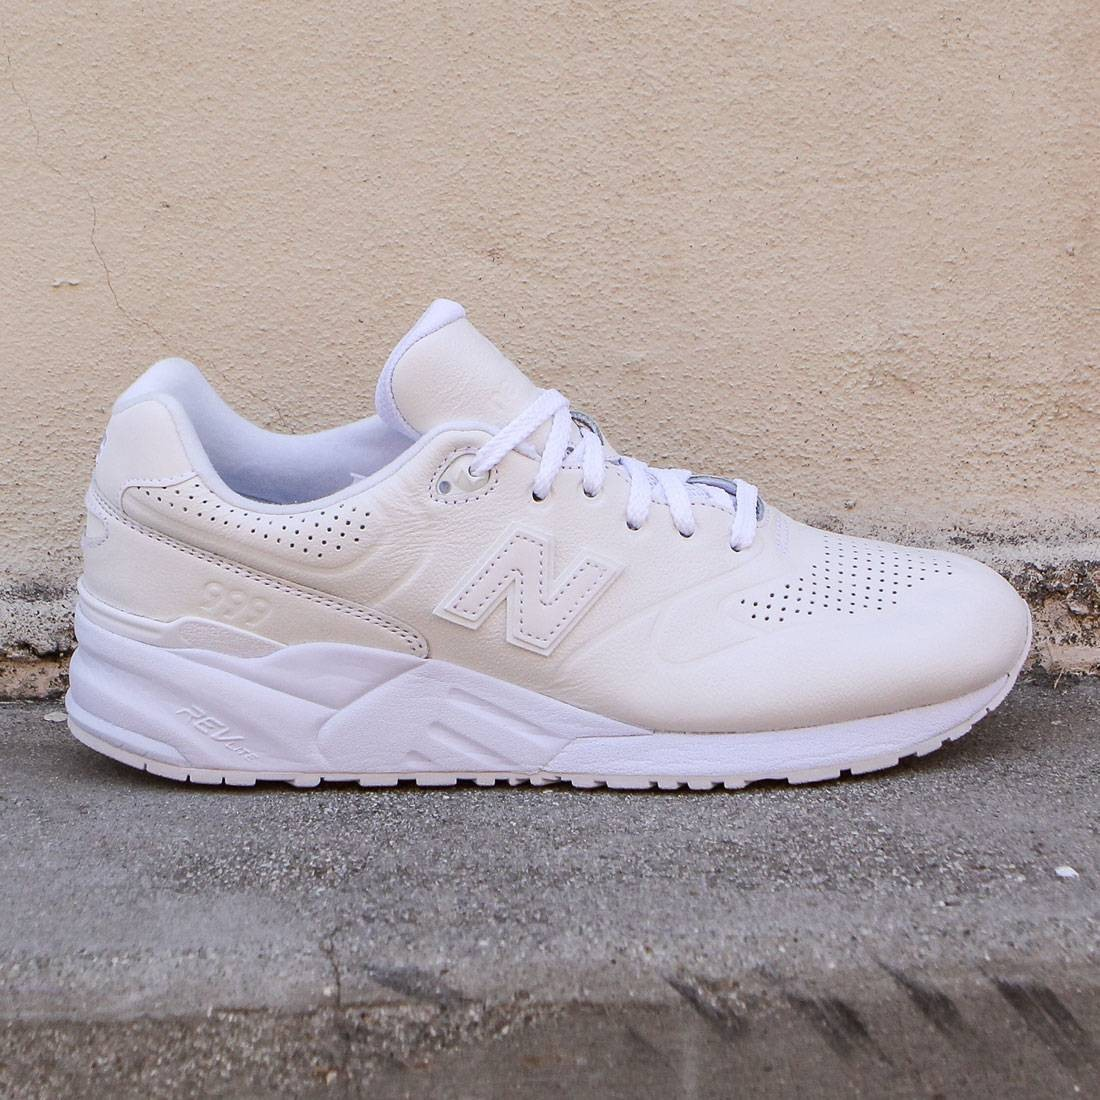 quality design 1f193 fdf0a New Balance Men 999 Deconstructed 90s Running Leather MRL999AH white